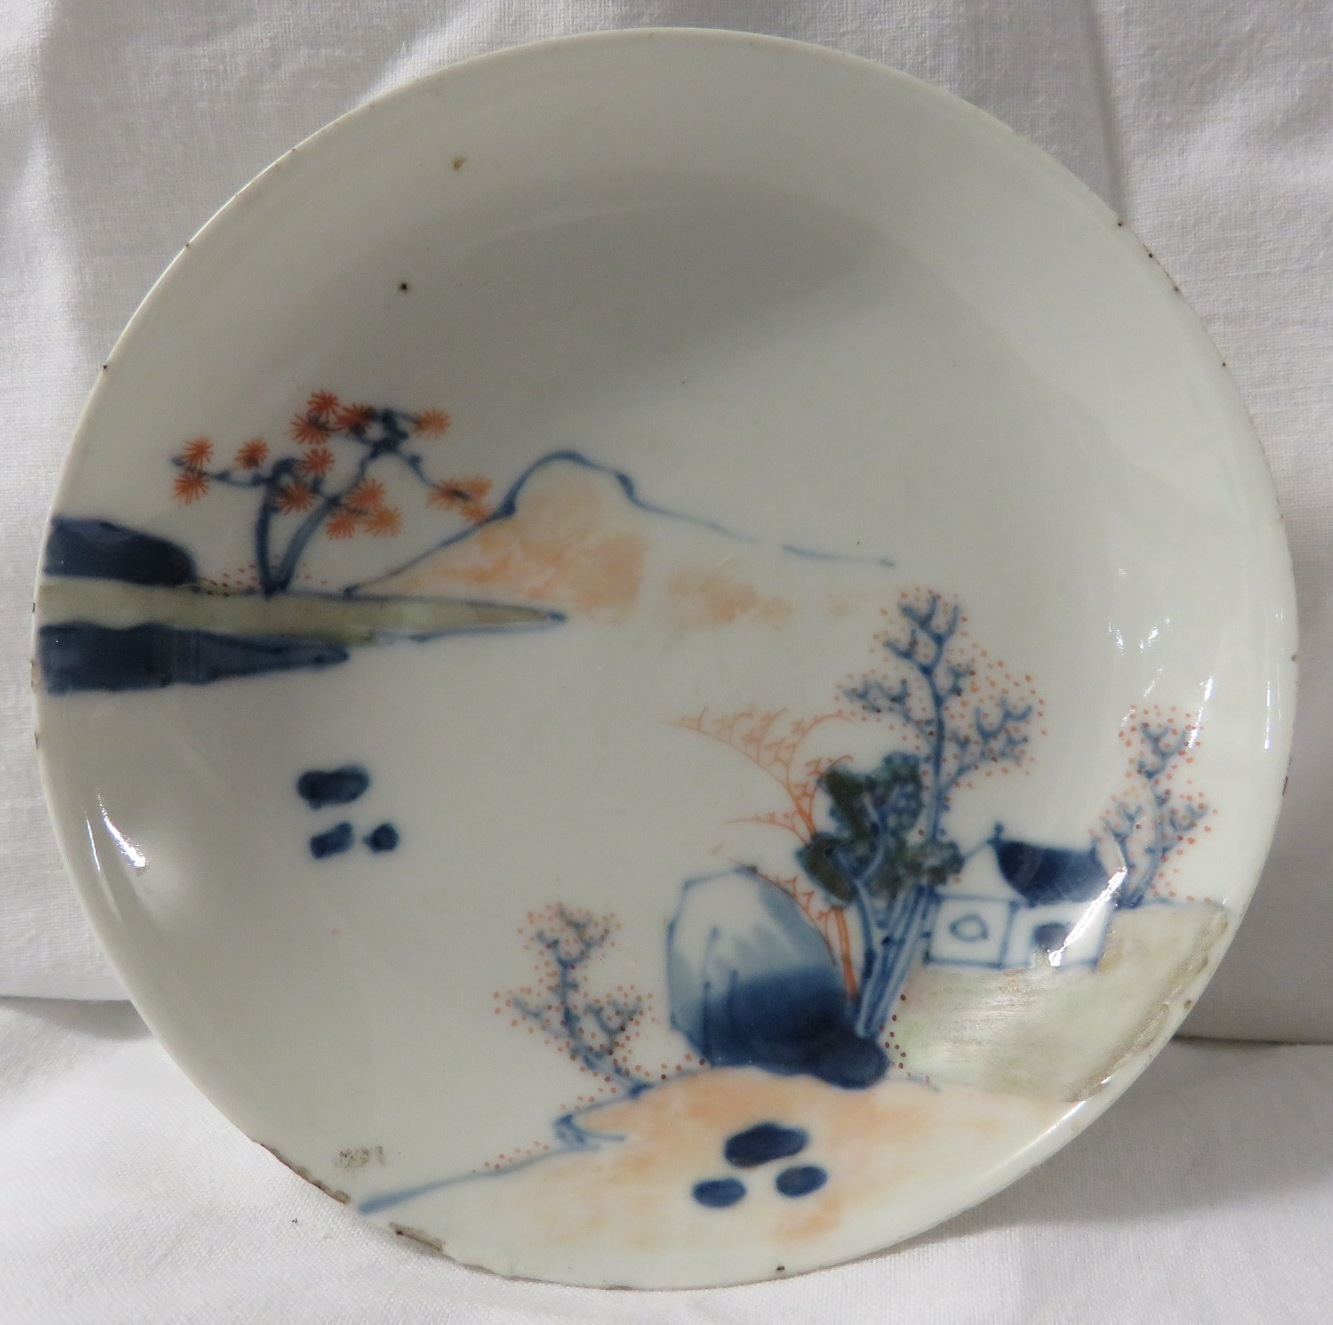 Lot 47 - A small Japanese porcelain dish painted with landscape in blue and red, diameter 11.5cm